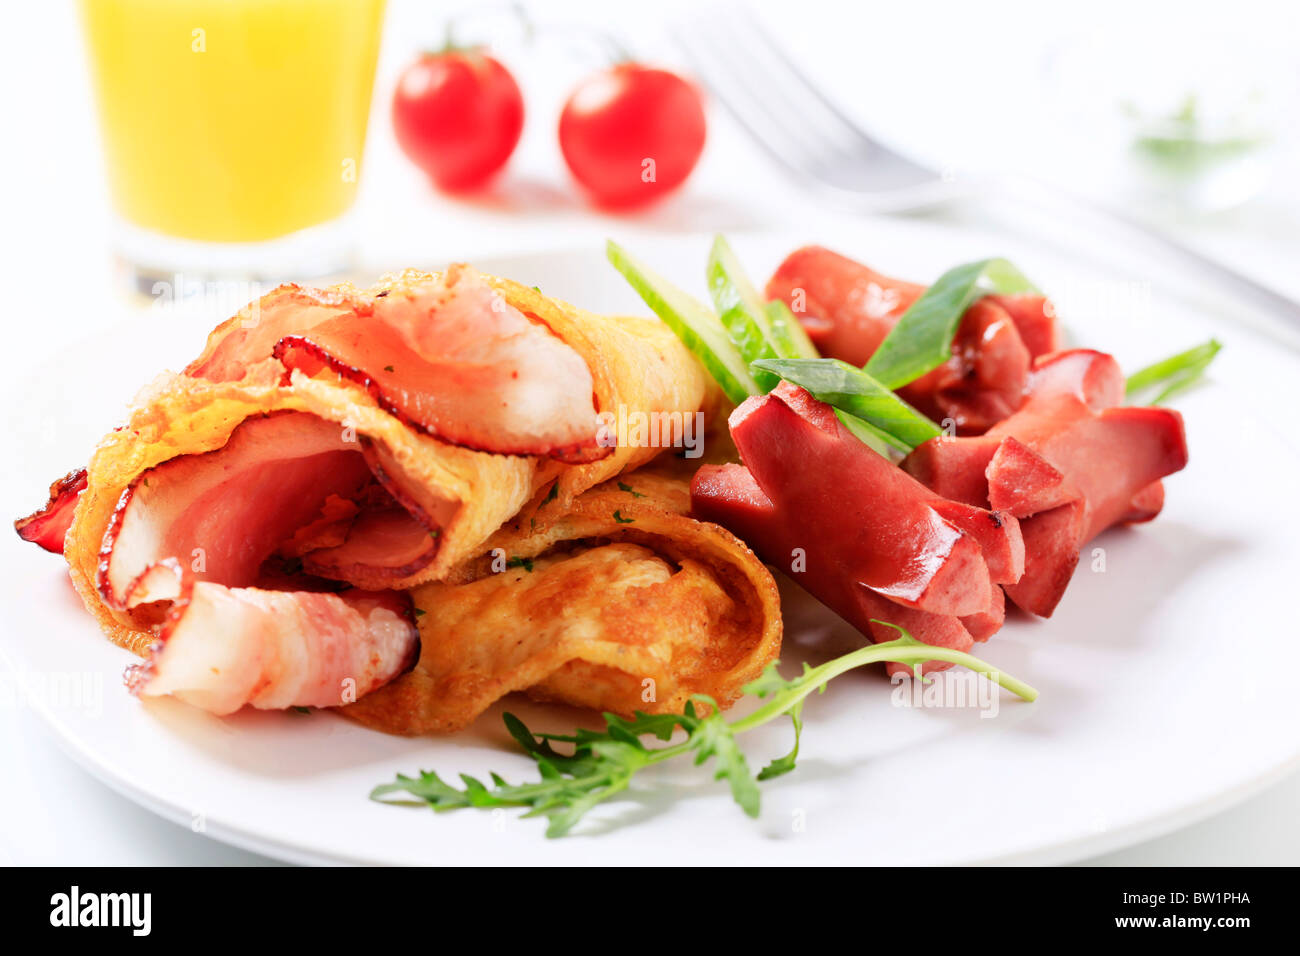 Omelet with bacon and sausages - Stock Image